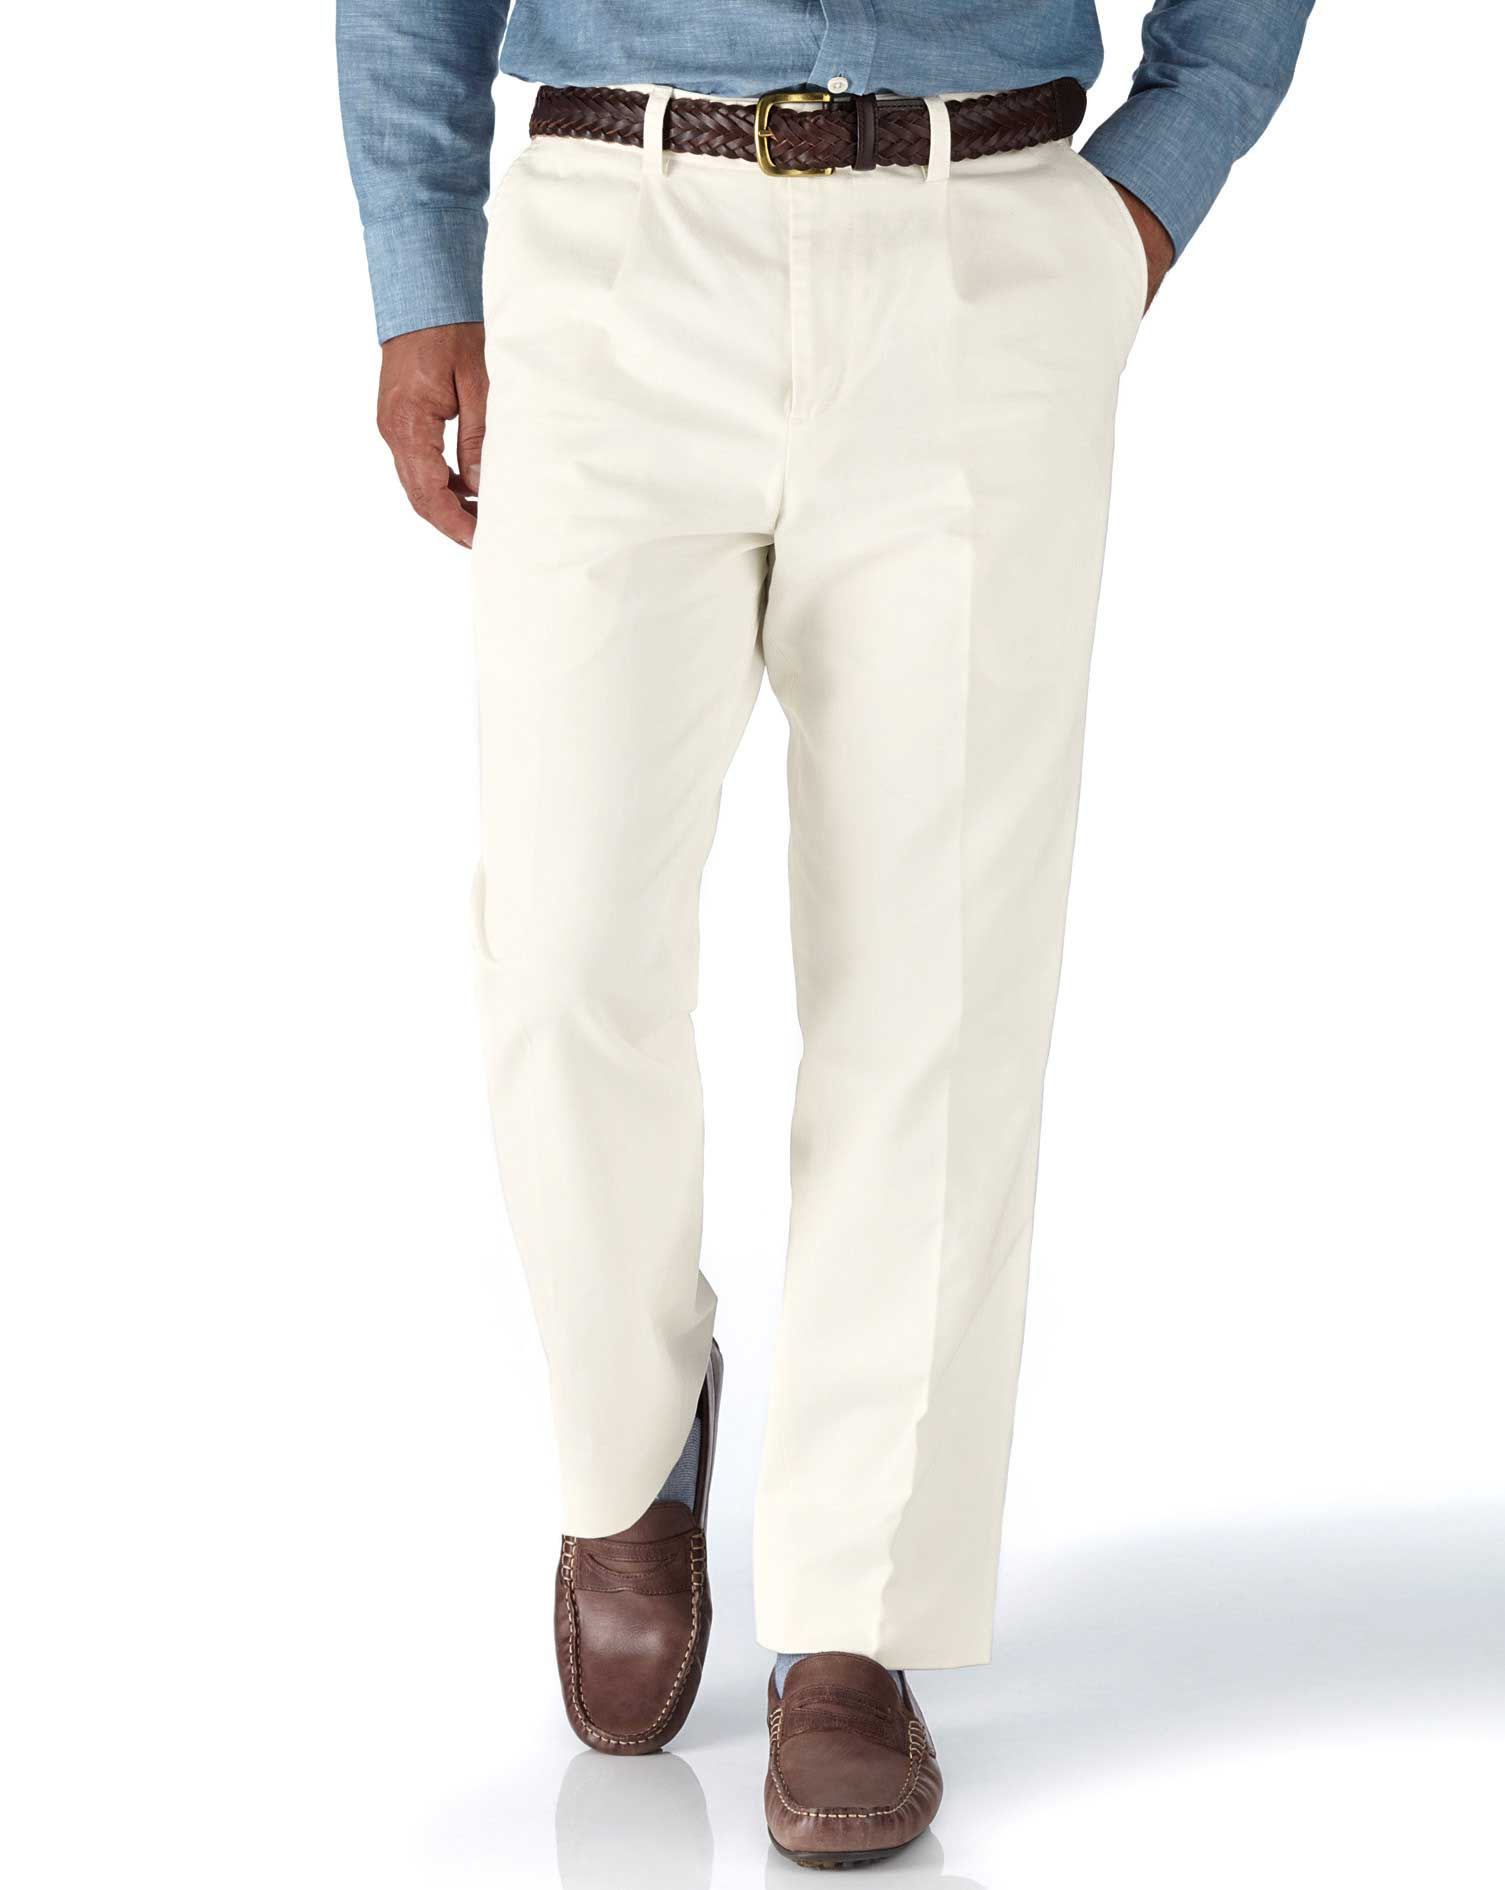 White Classic Fit Single Pleat Weekend Cotton Chino Trousers Size W38 L29 by Charles Tyrwhitt